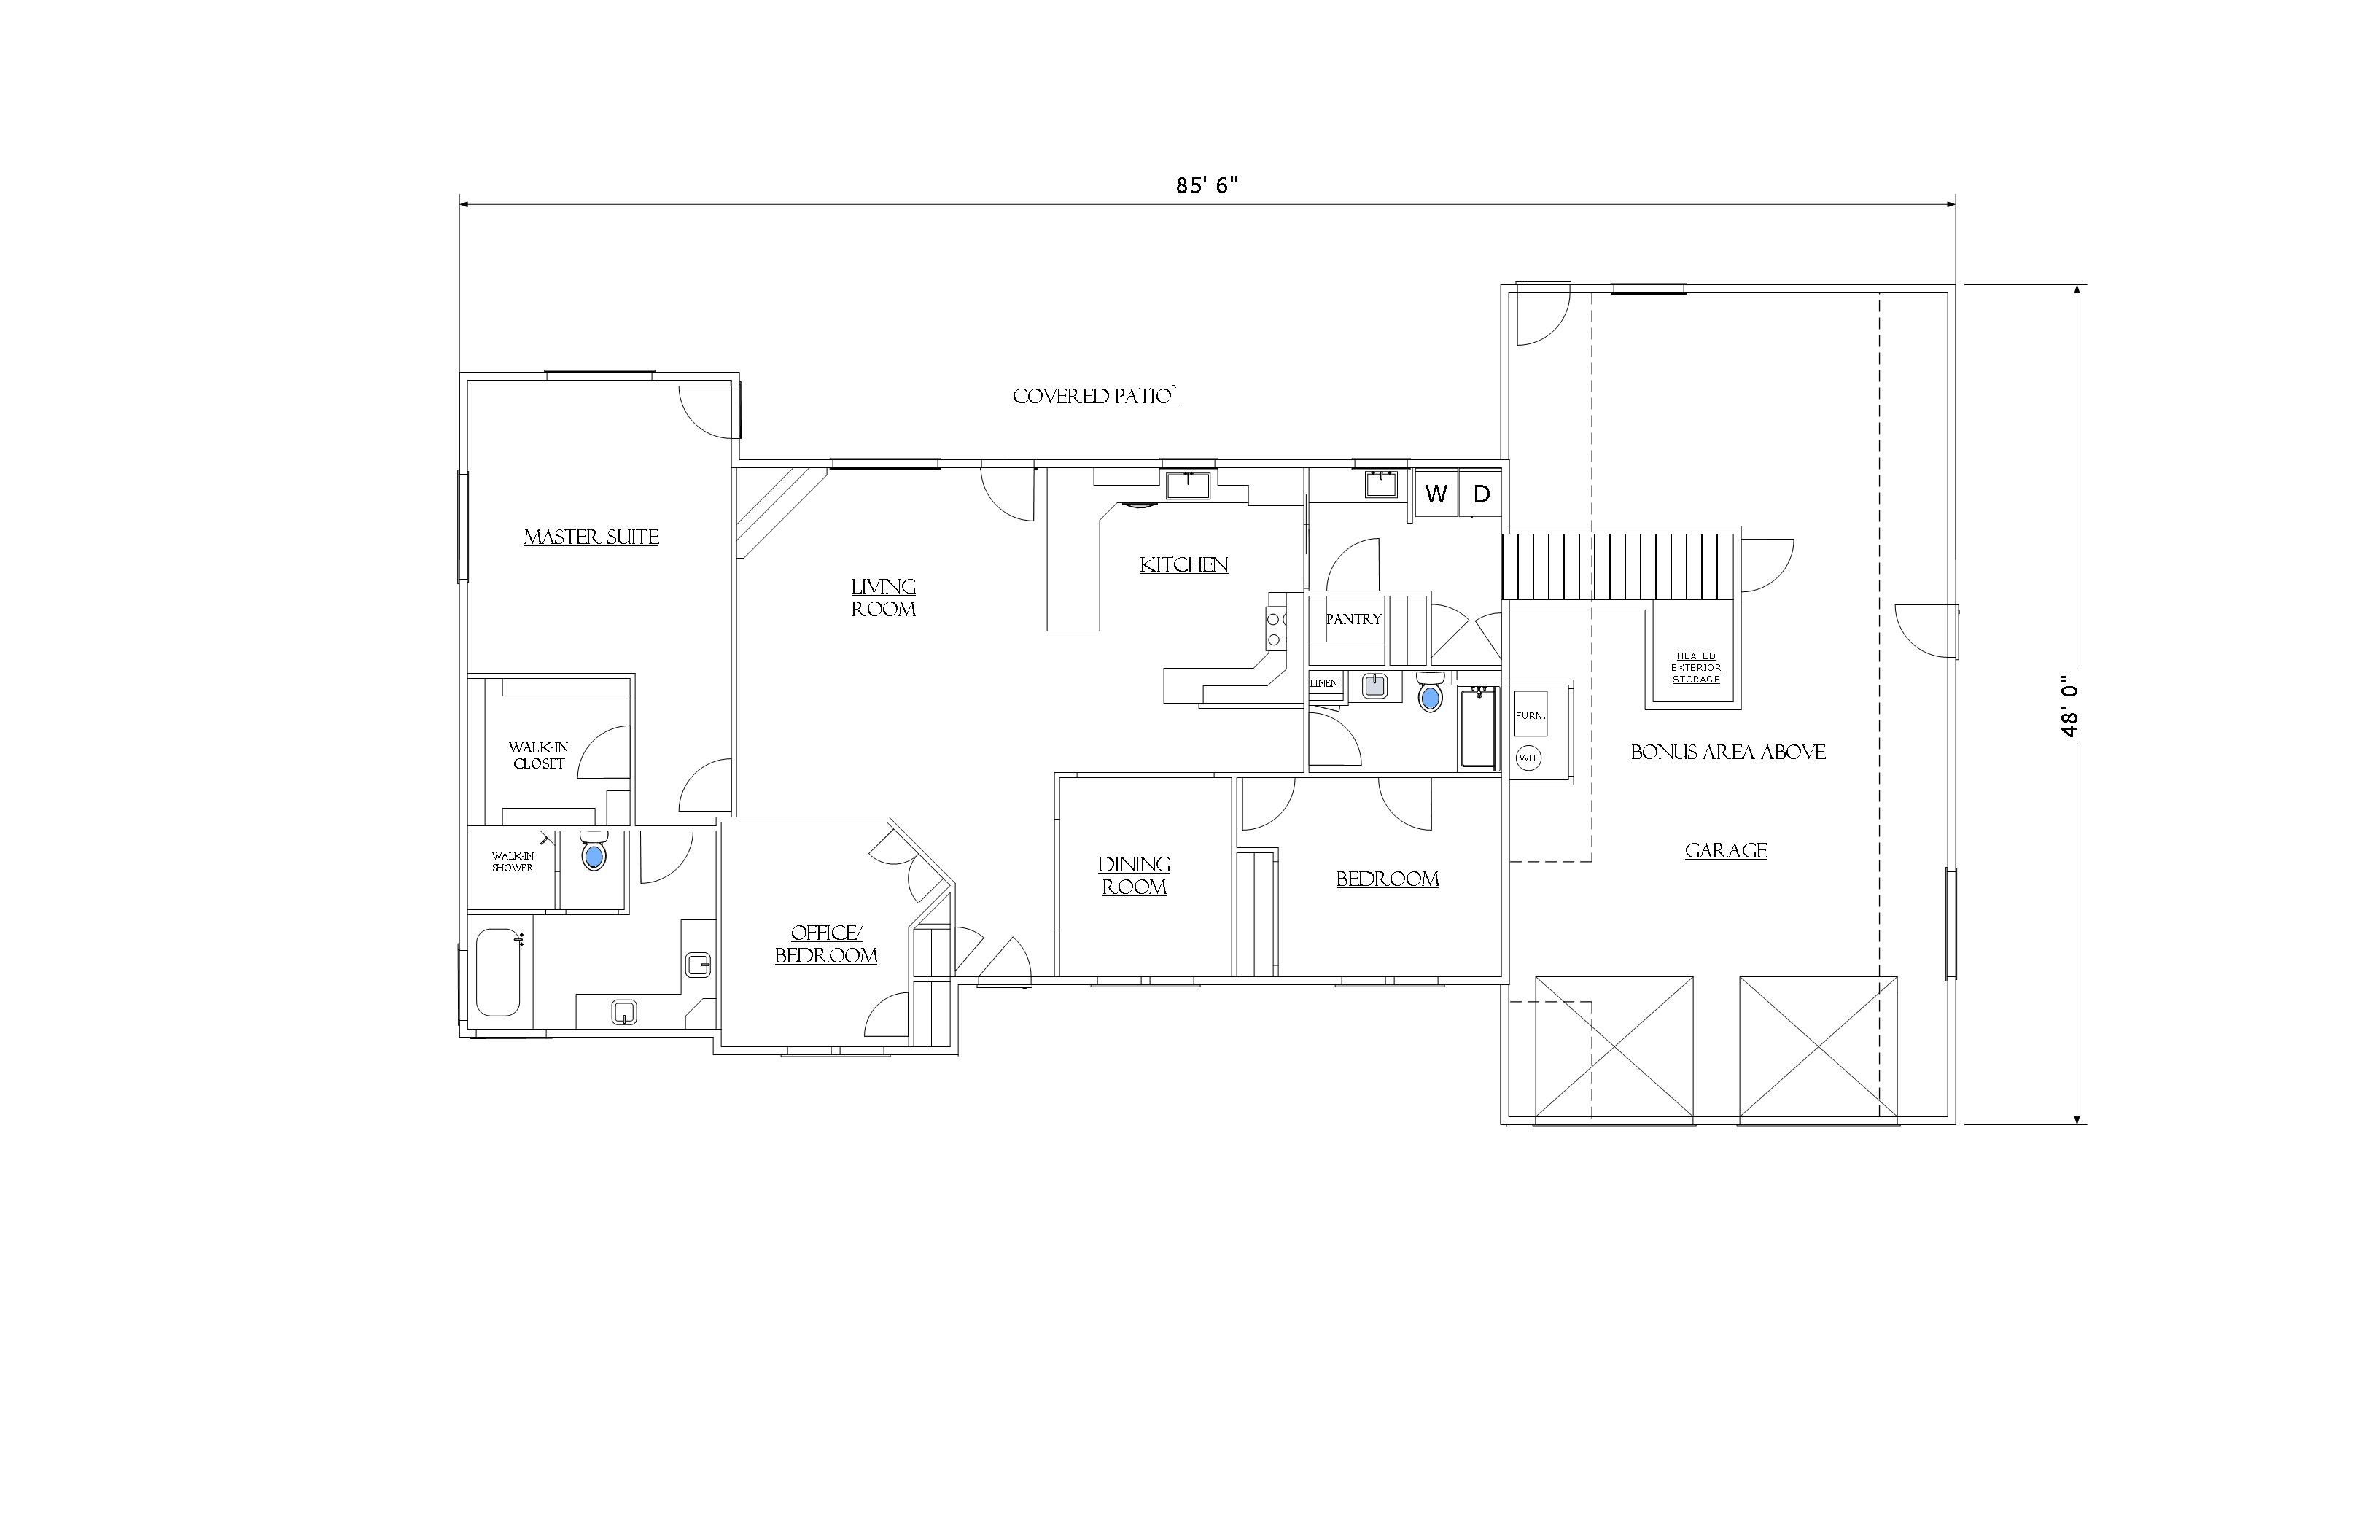 Large Warehouse Floor Plans moreover Floor Plan Measuring Service additionally Room Planning besides Bathroom Floor Plans With Medium also 057h 0009. on large office layout floor plan